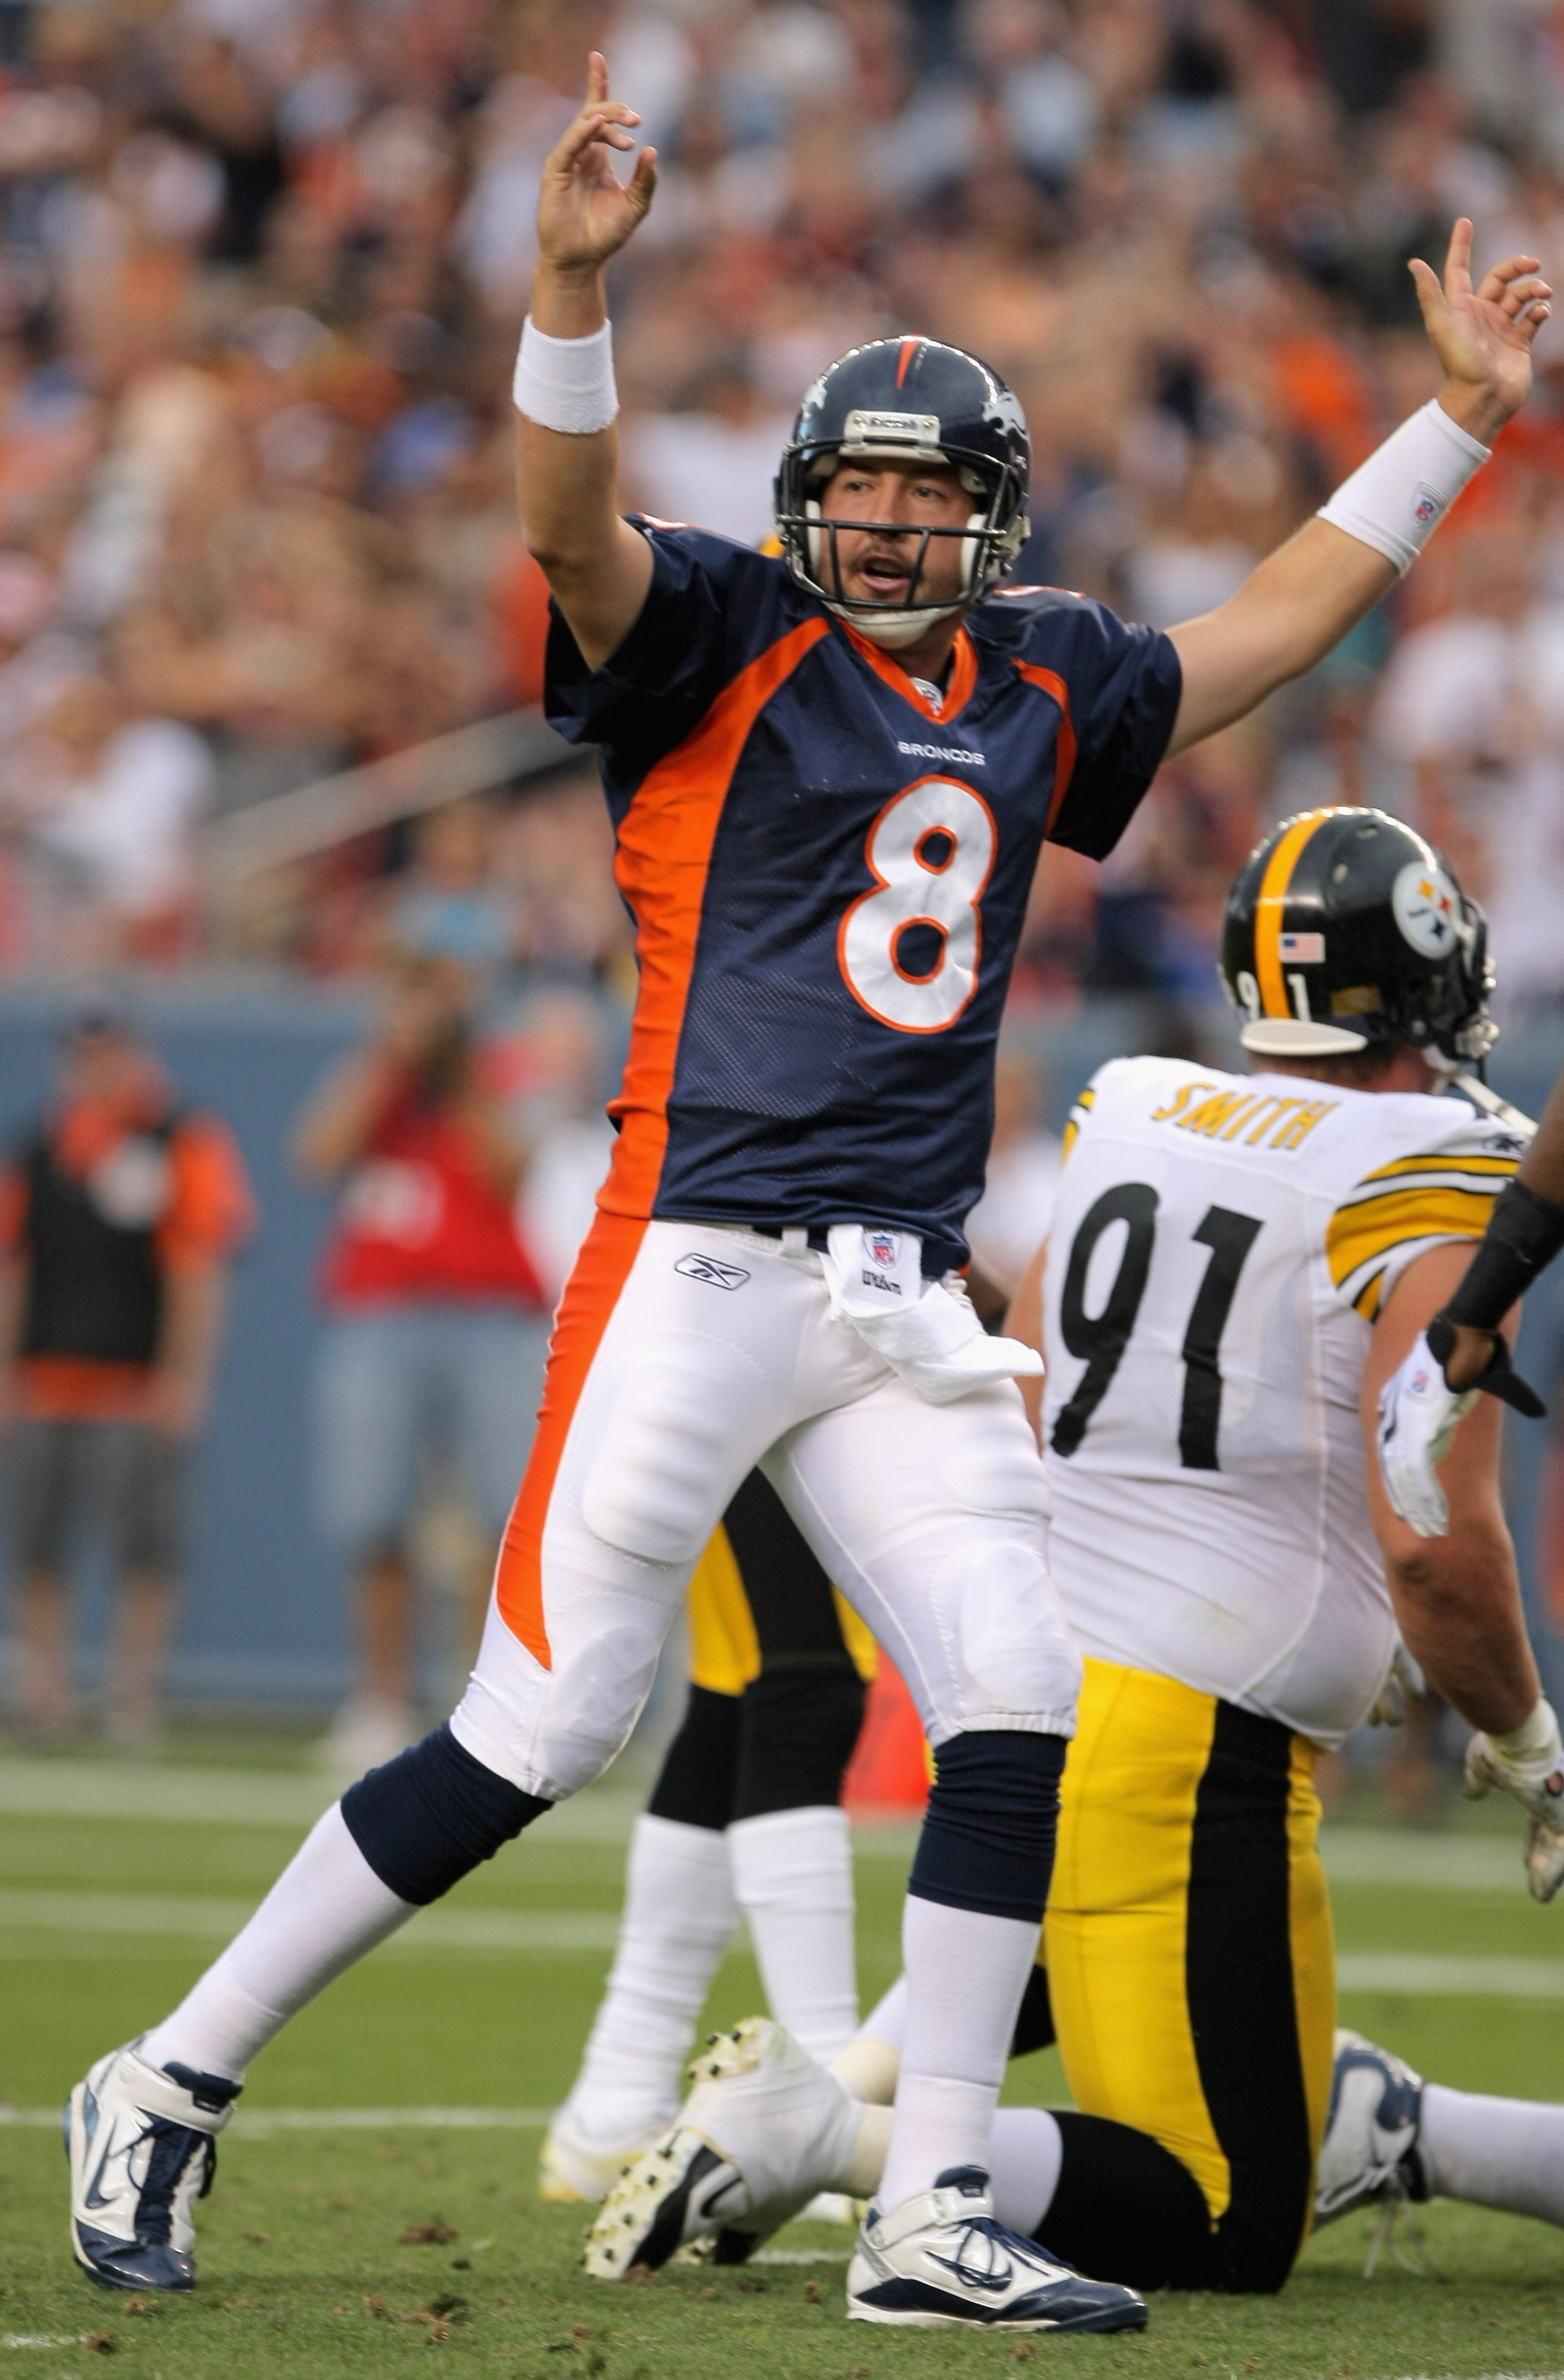 DENVER - AUGUST 29:  Quarterback Kyle Orton #8 of the Denver Broncos celebrates a touchdown by teammate LenDale White in the first quarter against the Pittsburgh Steelers during preseason NFL action at INVESCO Field at Mile High on August 29, 2010 in Denv